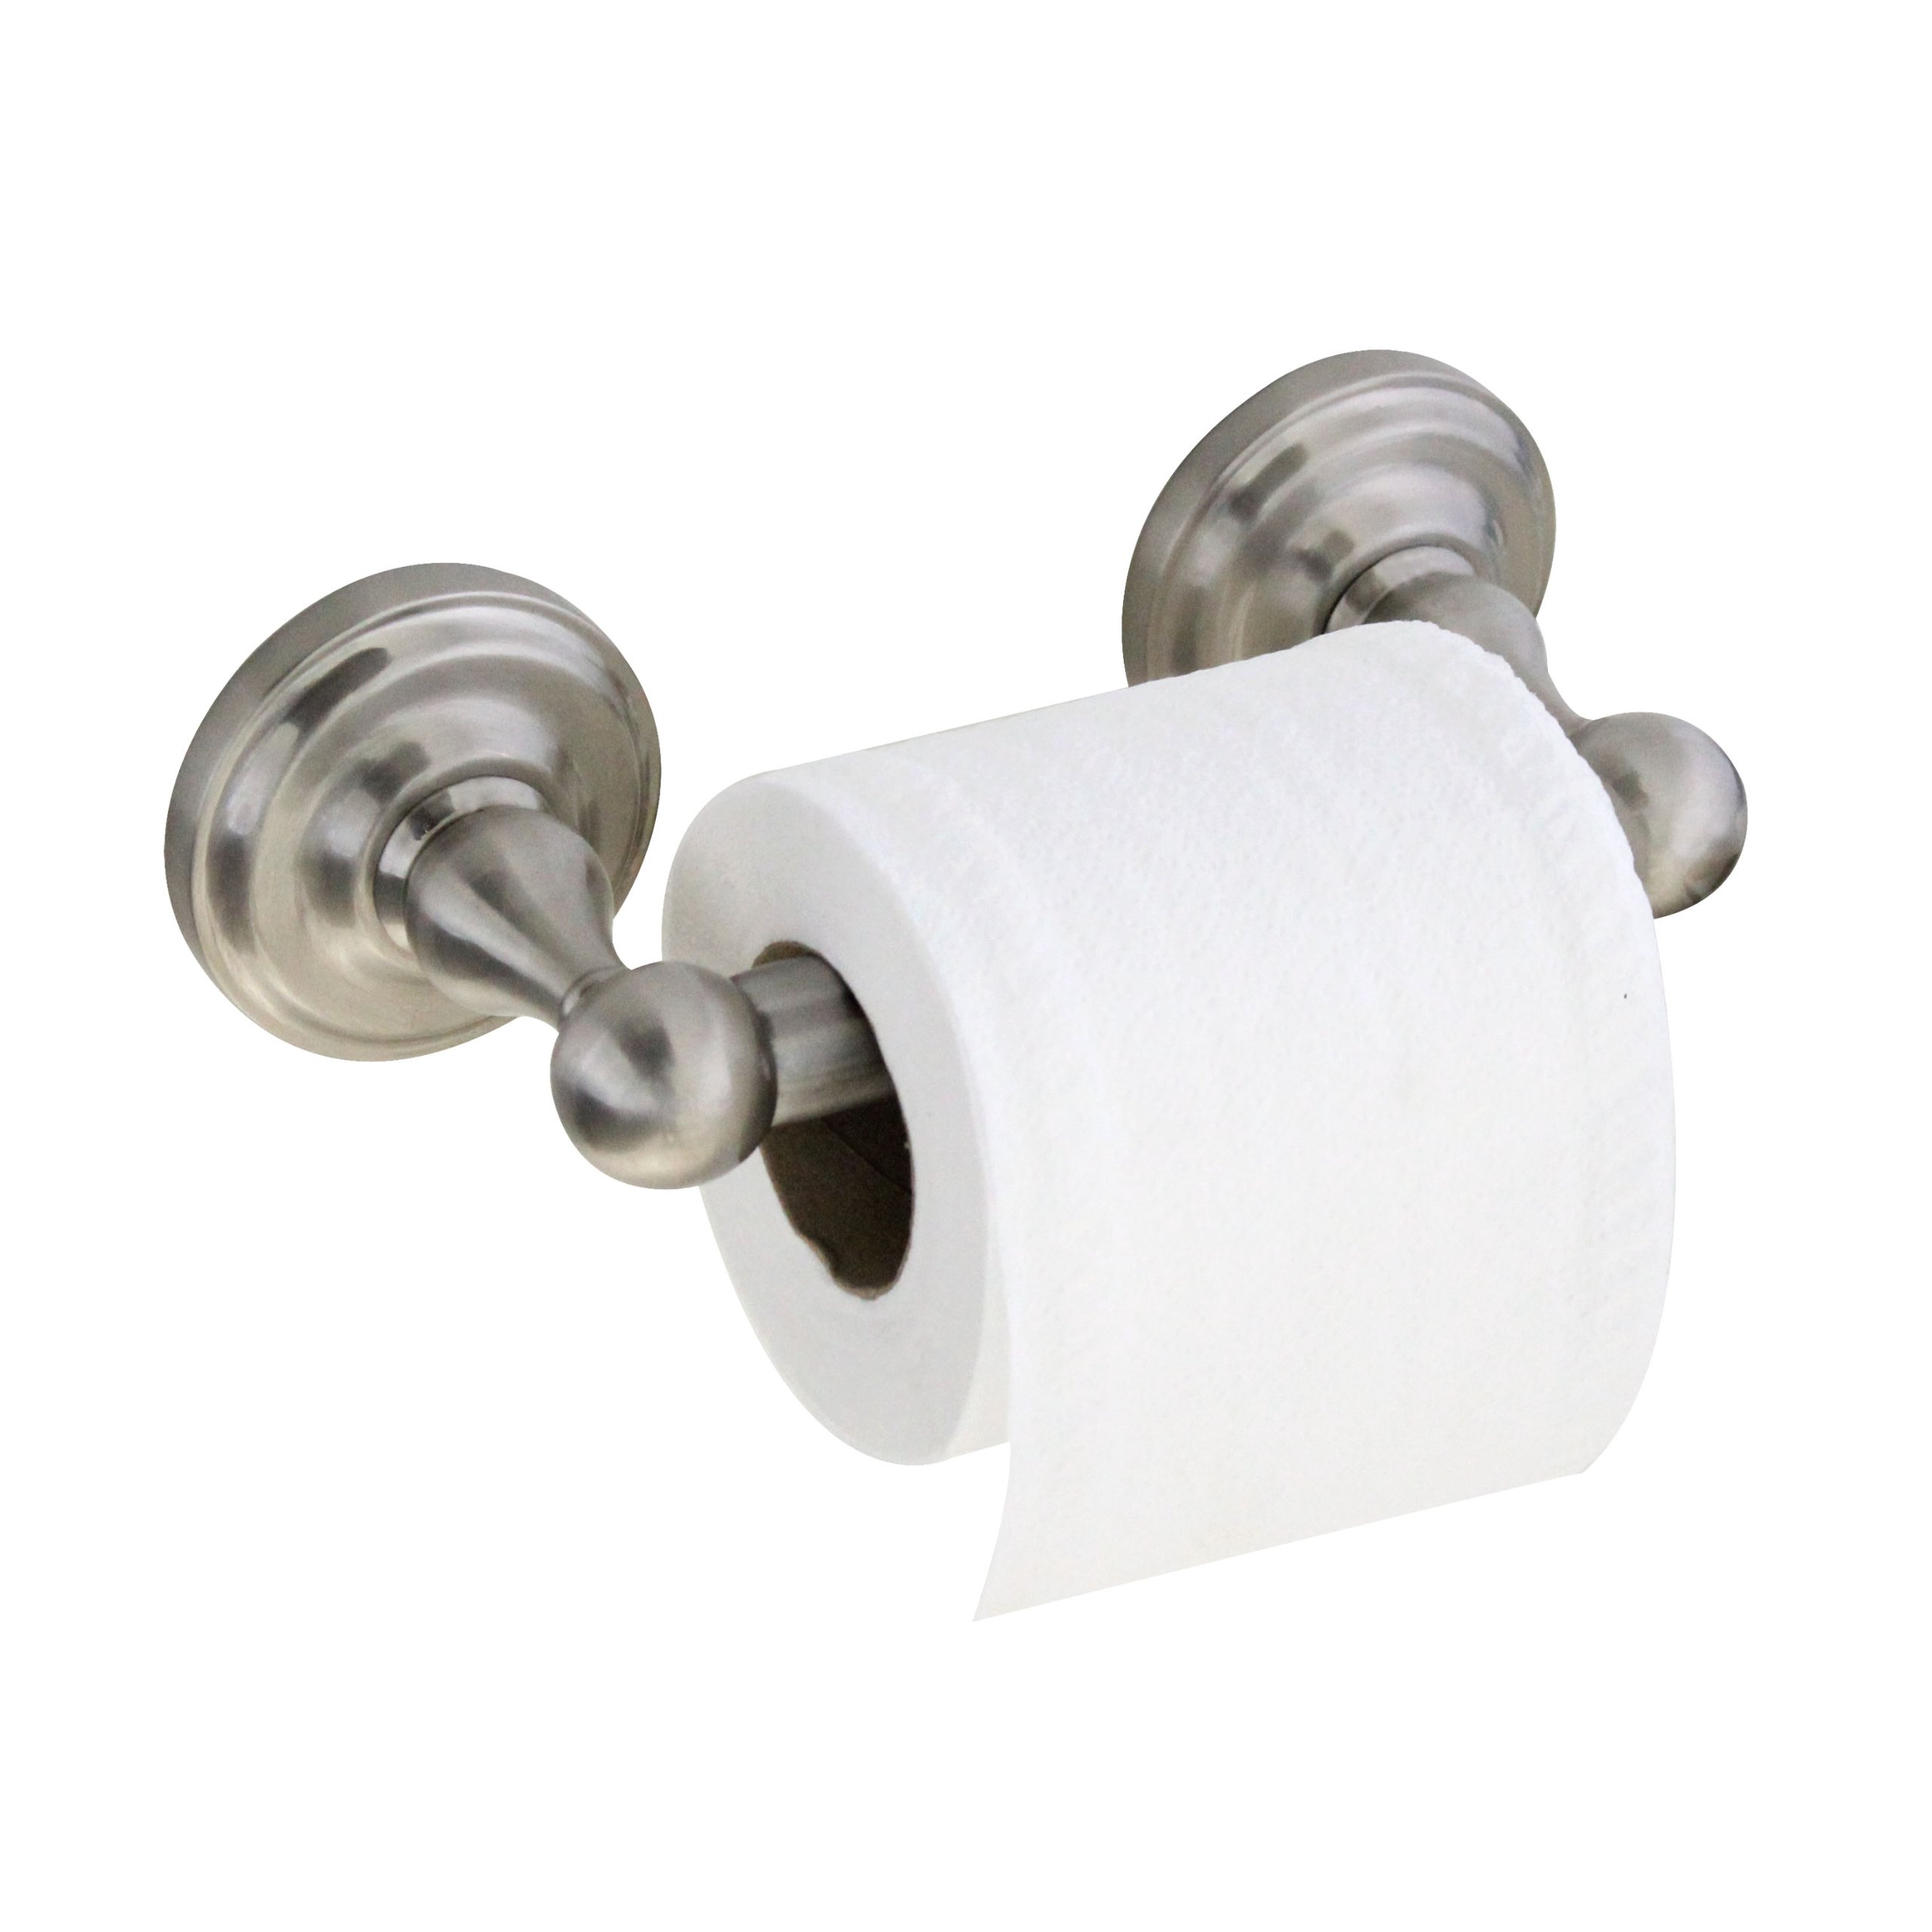 MODONA Toilet Paper Holder with Stainless Steel Roller - Satin Nickel - Viola Series - 5 Year Warrantee